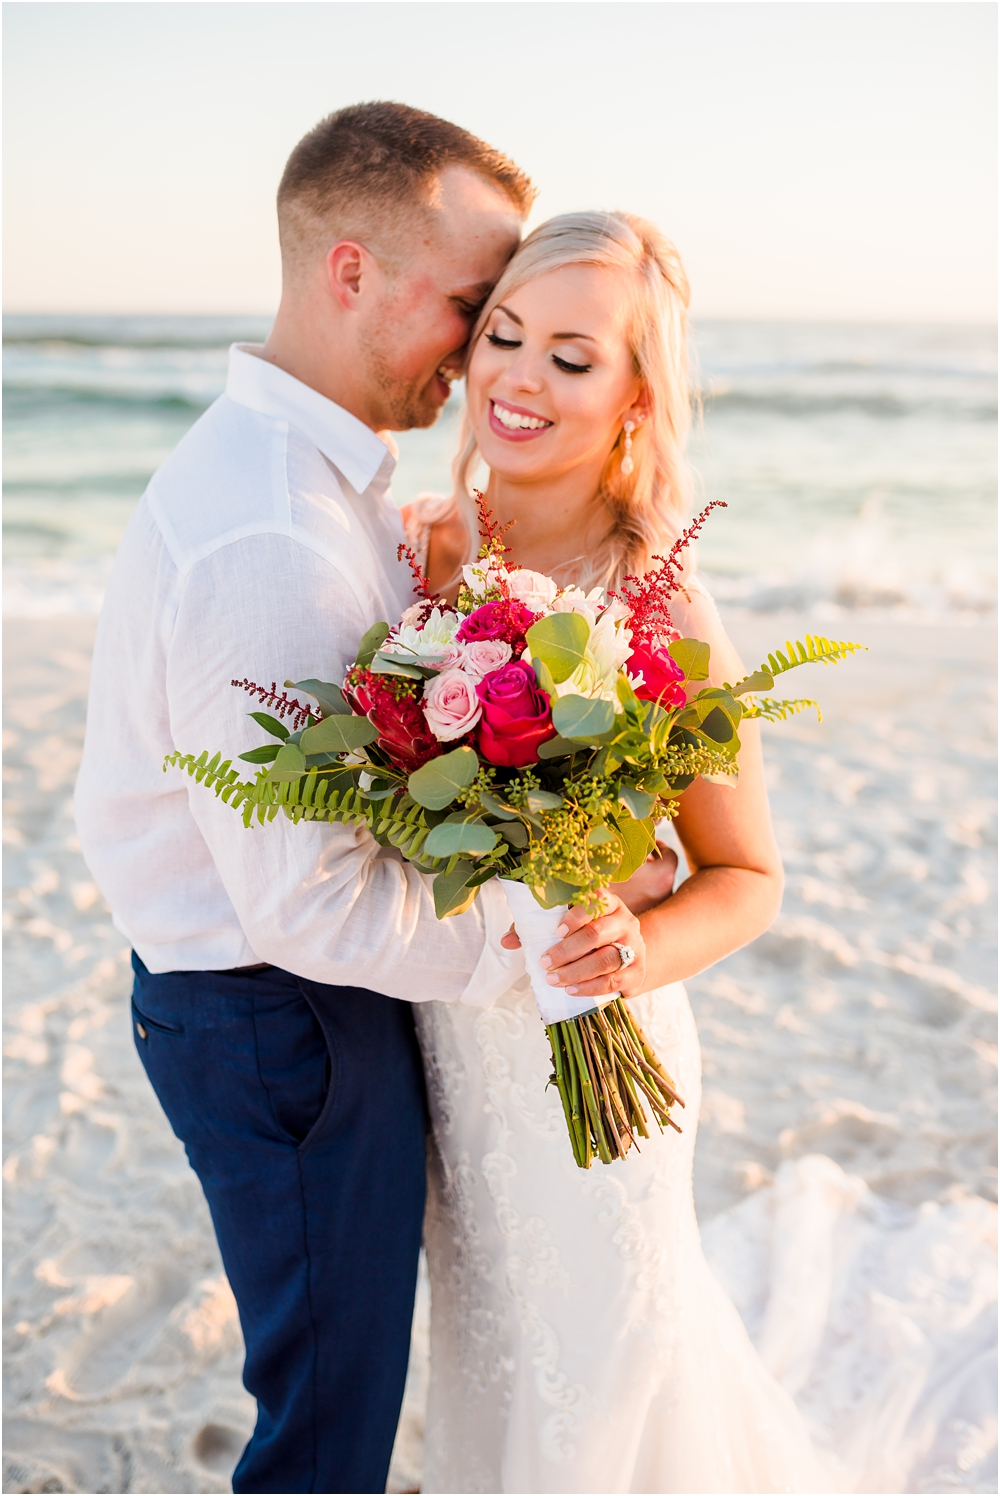 mcglothlin-wedding-kiersten-stevenson-photography-30a-panama-city-beach-dothan-tallahassee-(105-of-145).jpg